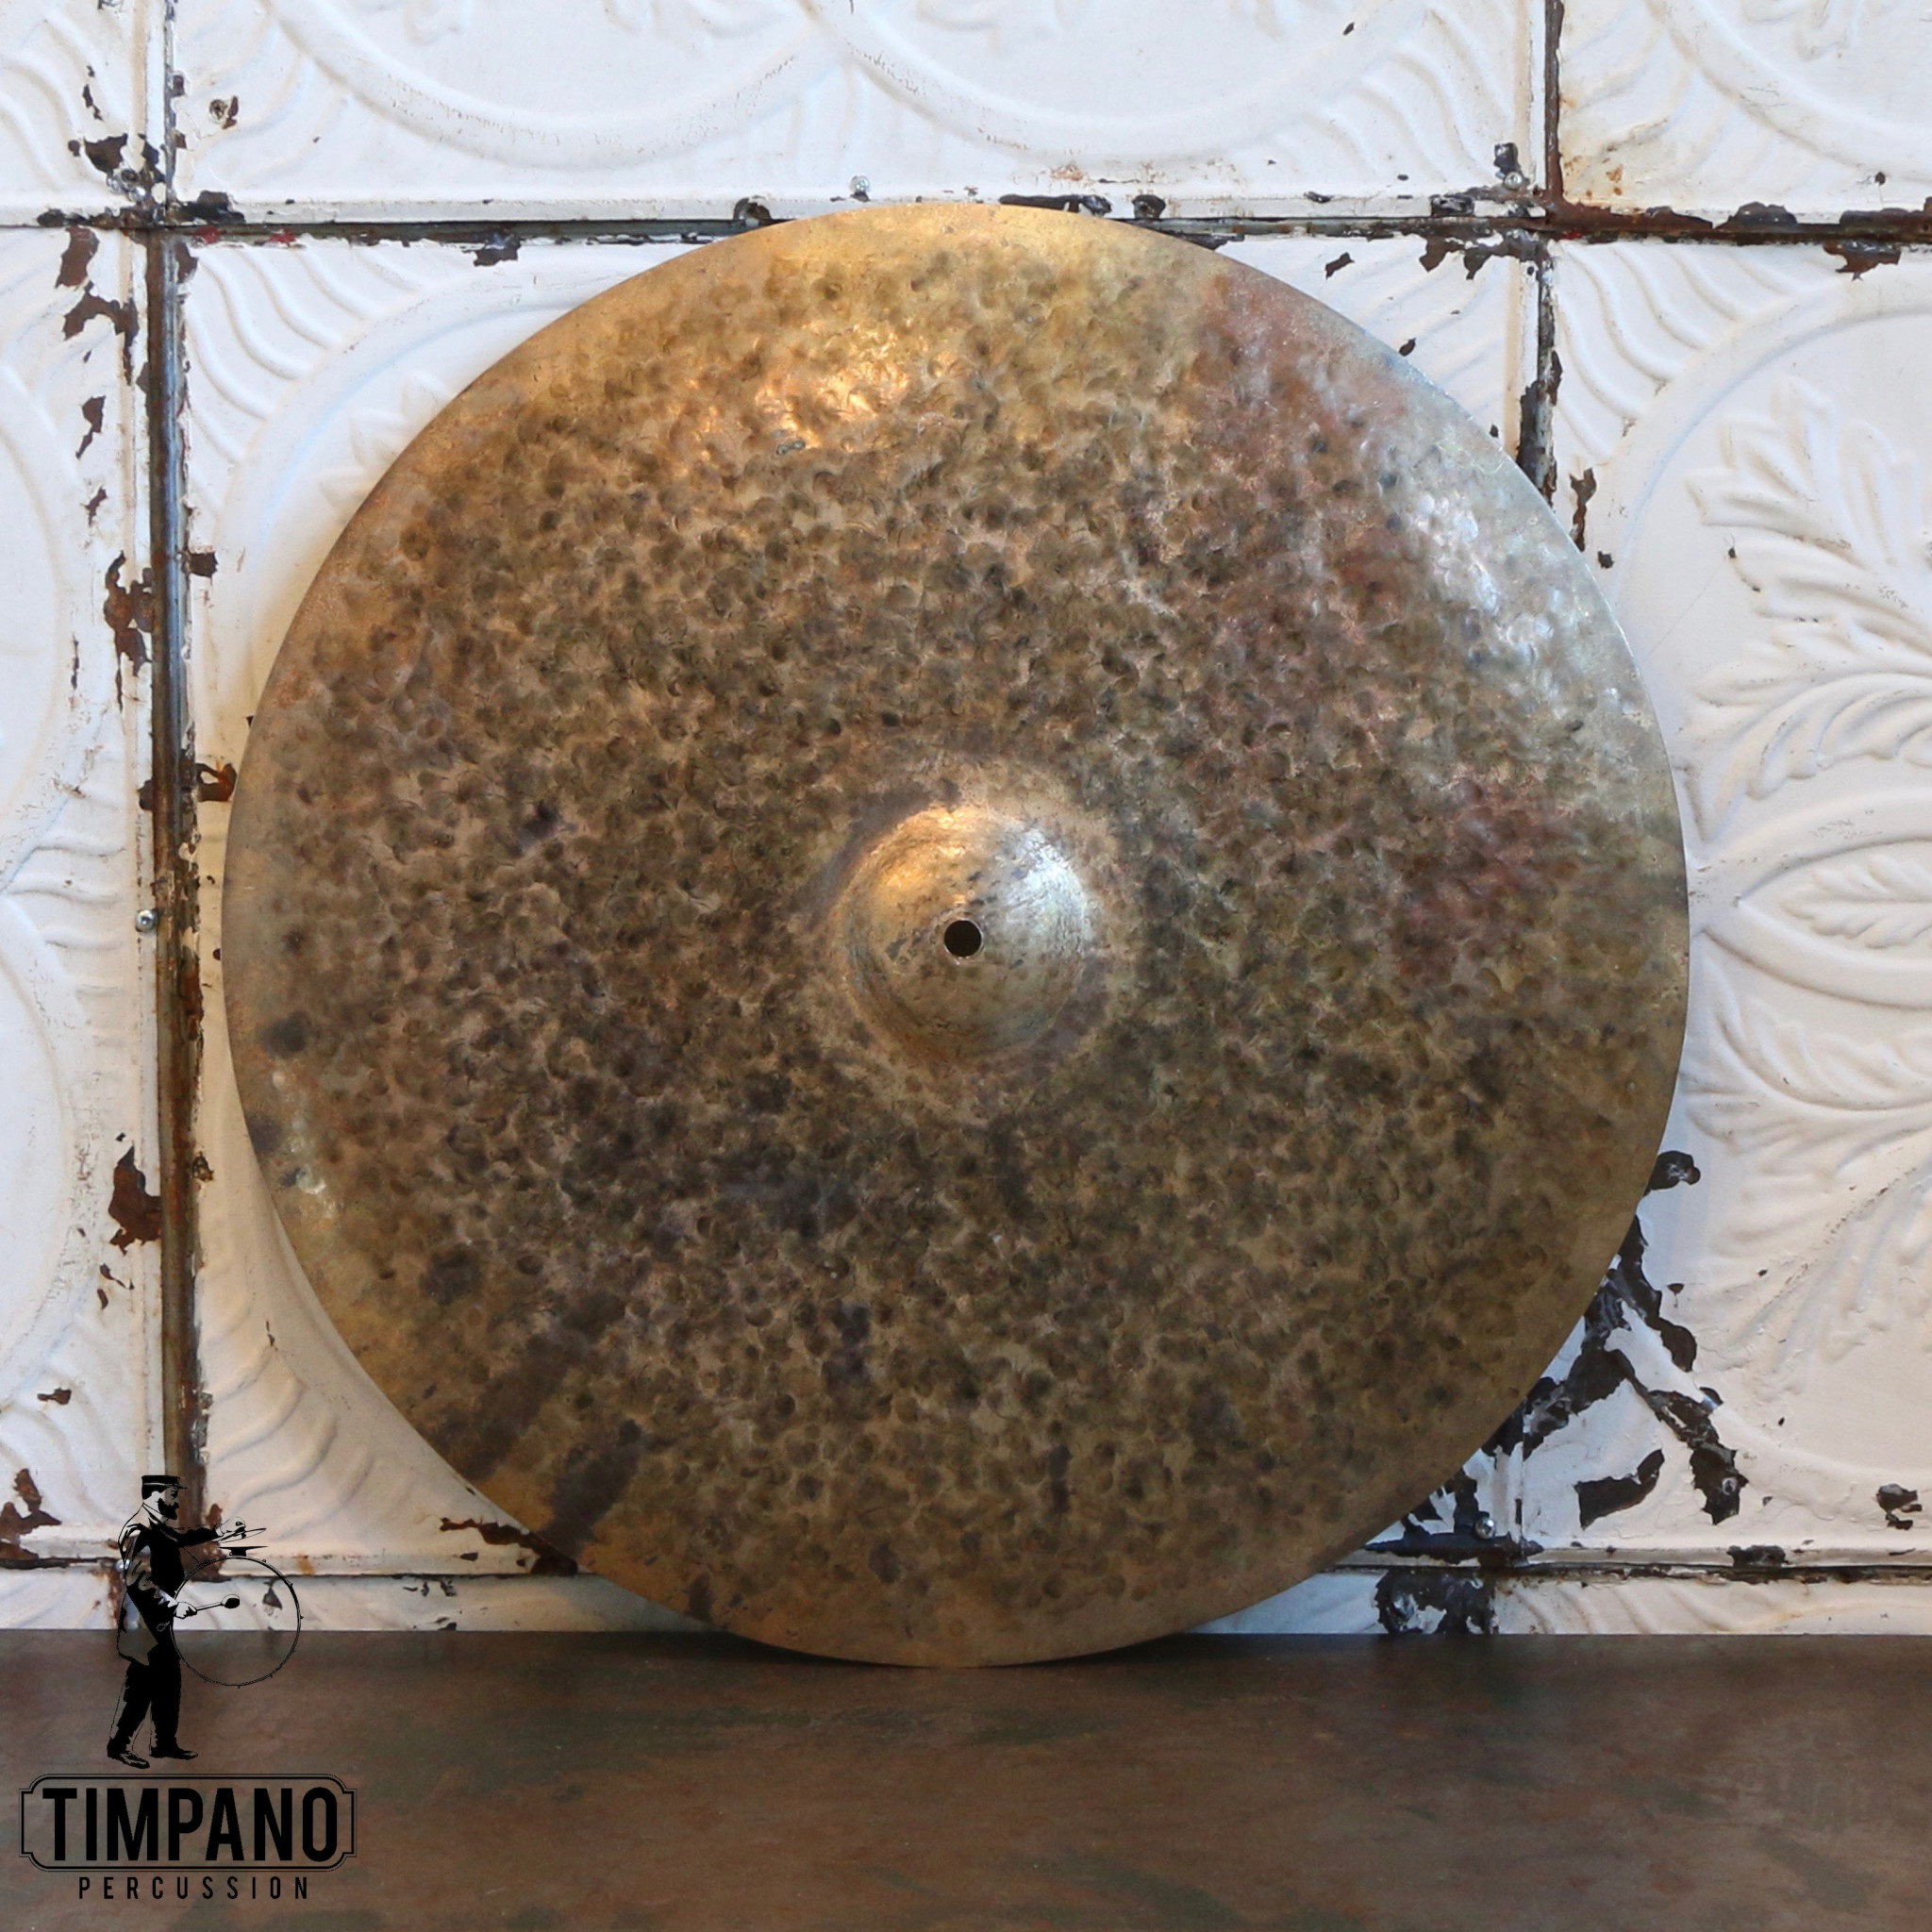 Byrne Cymbals Byrne Half Turk Small Bell Ride Cymbal 20in (2035g)